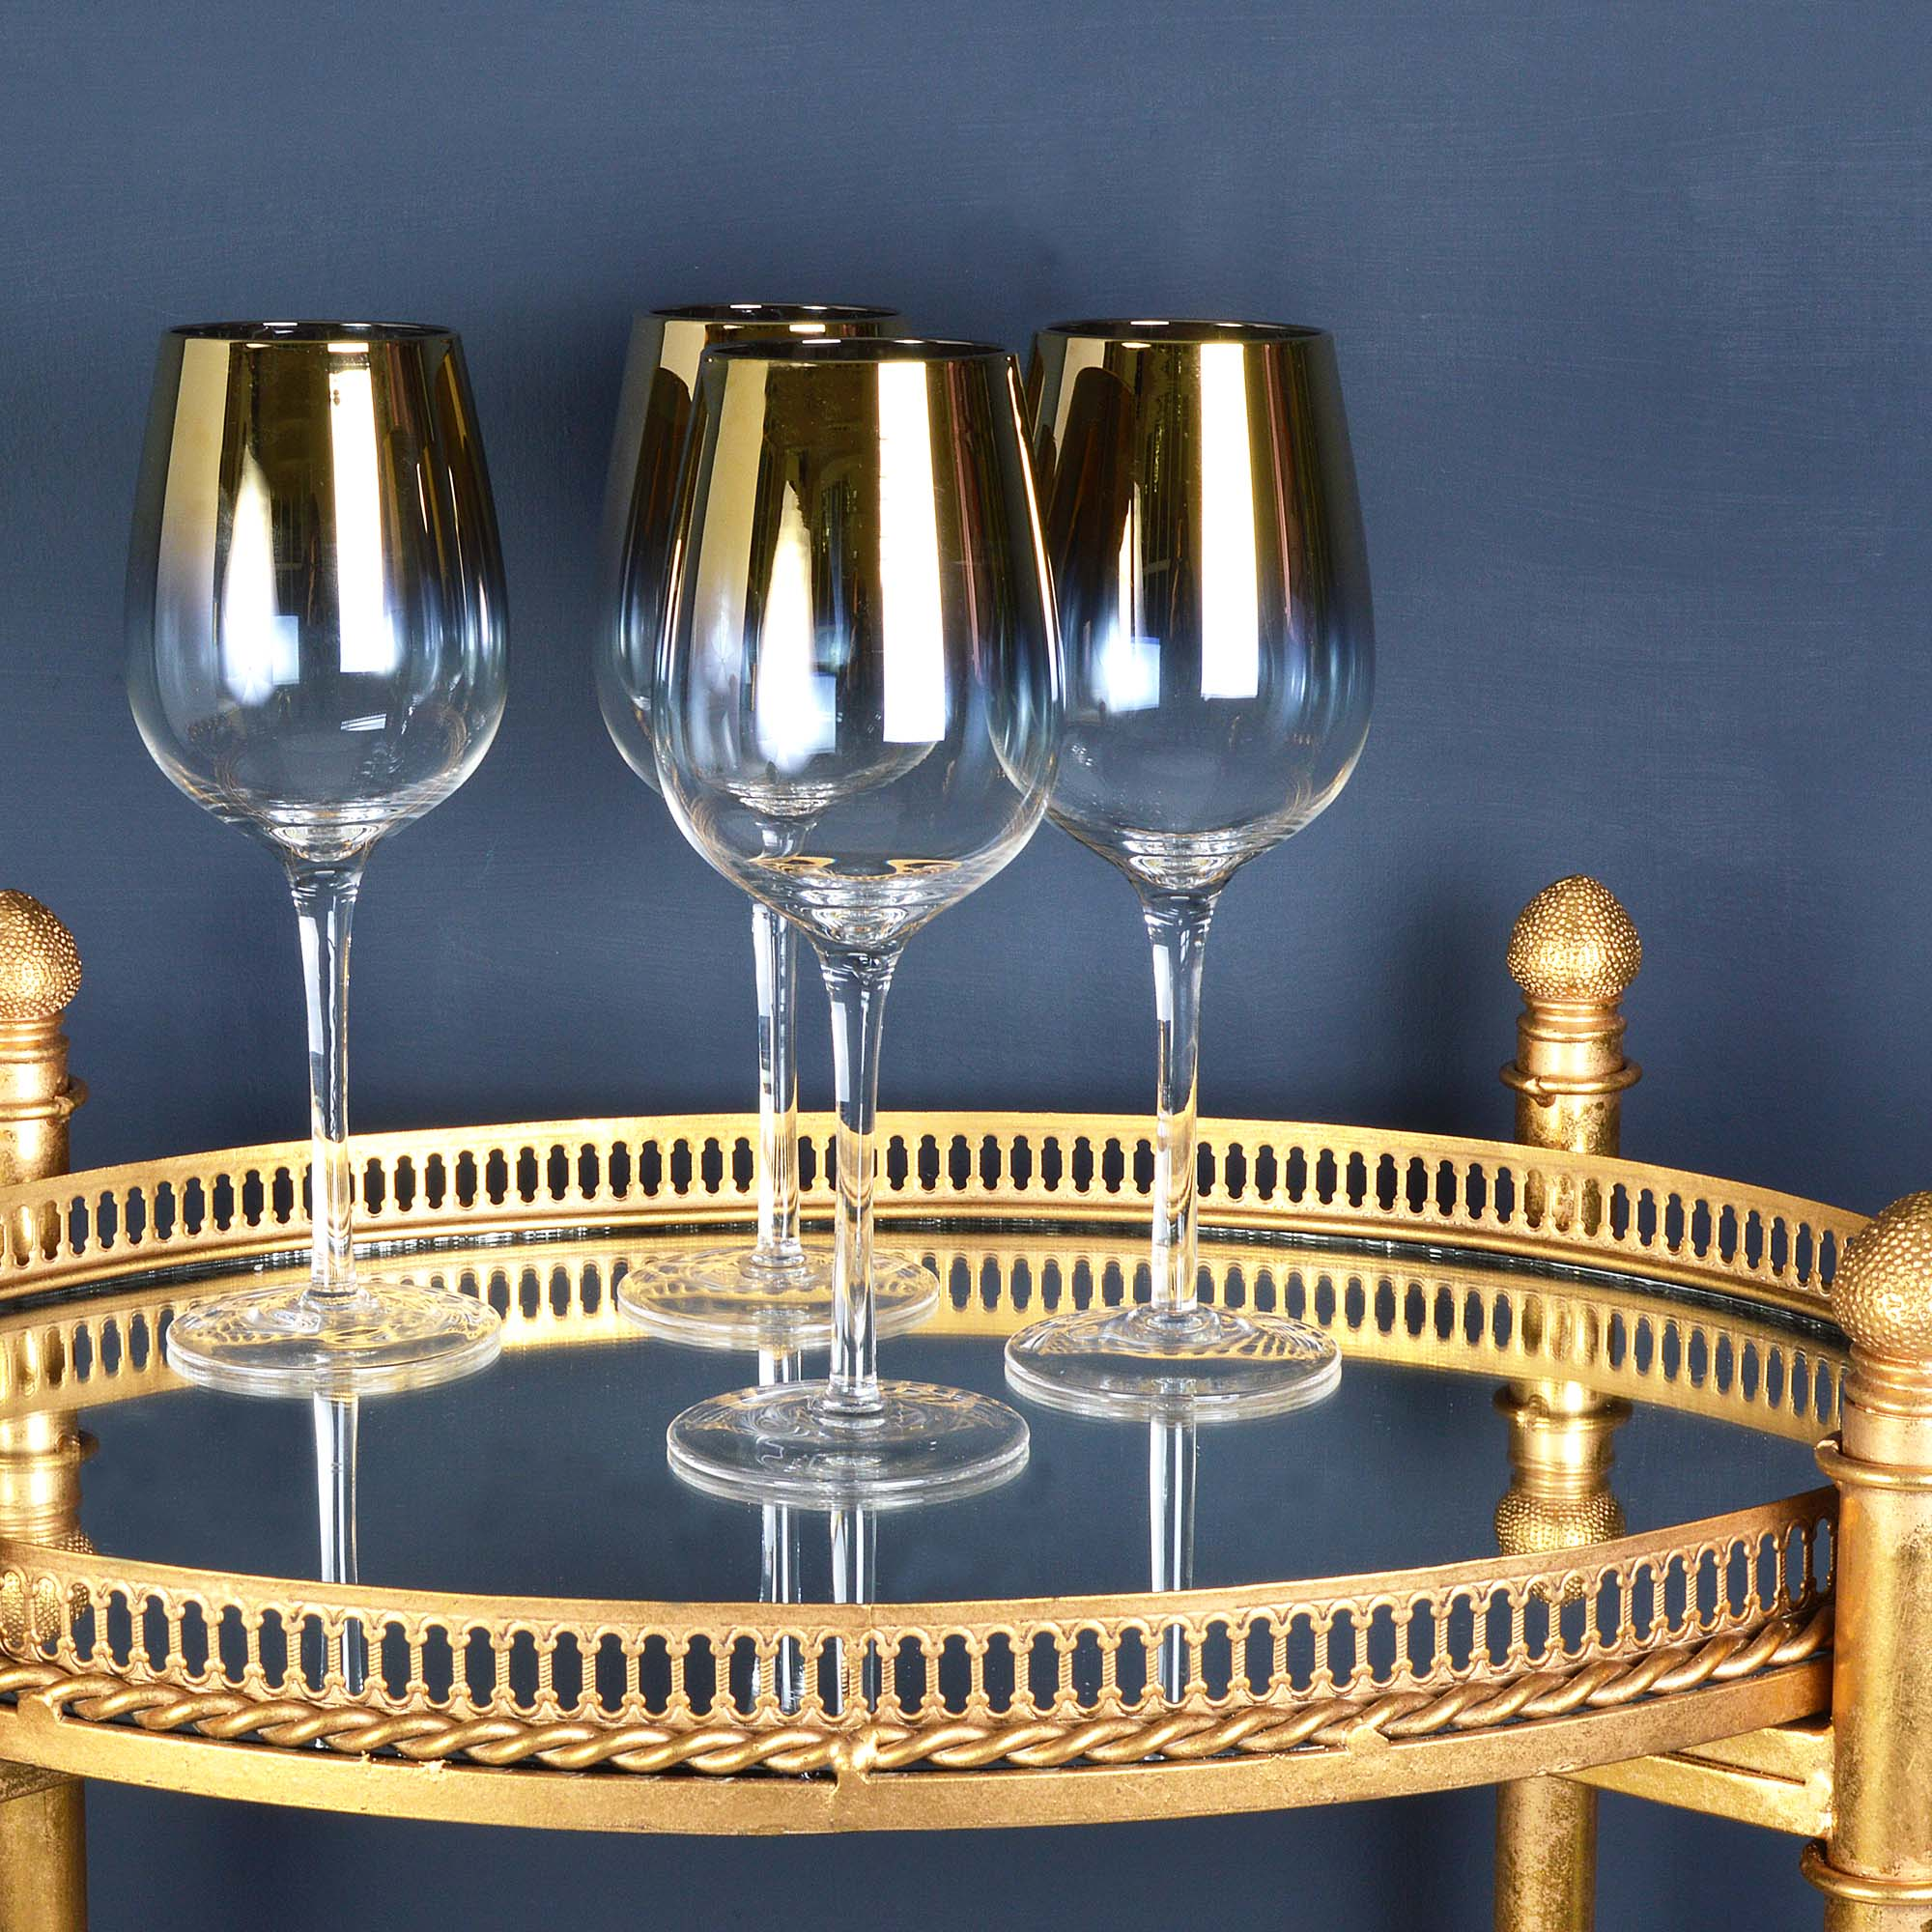 Audenza's ombre wine glasses and decorative drinks stand